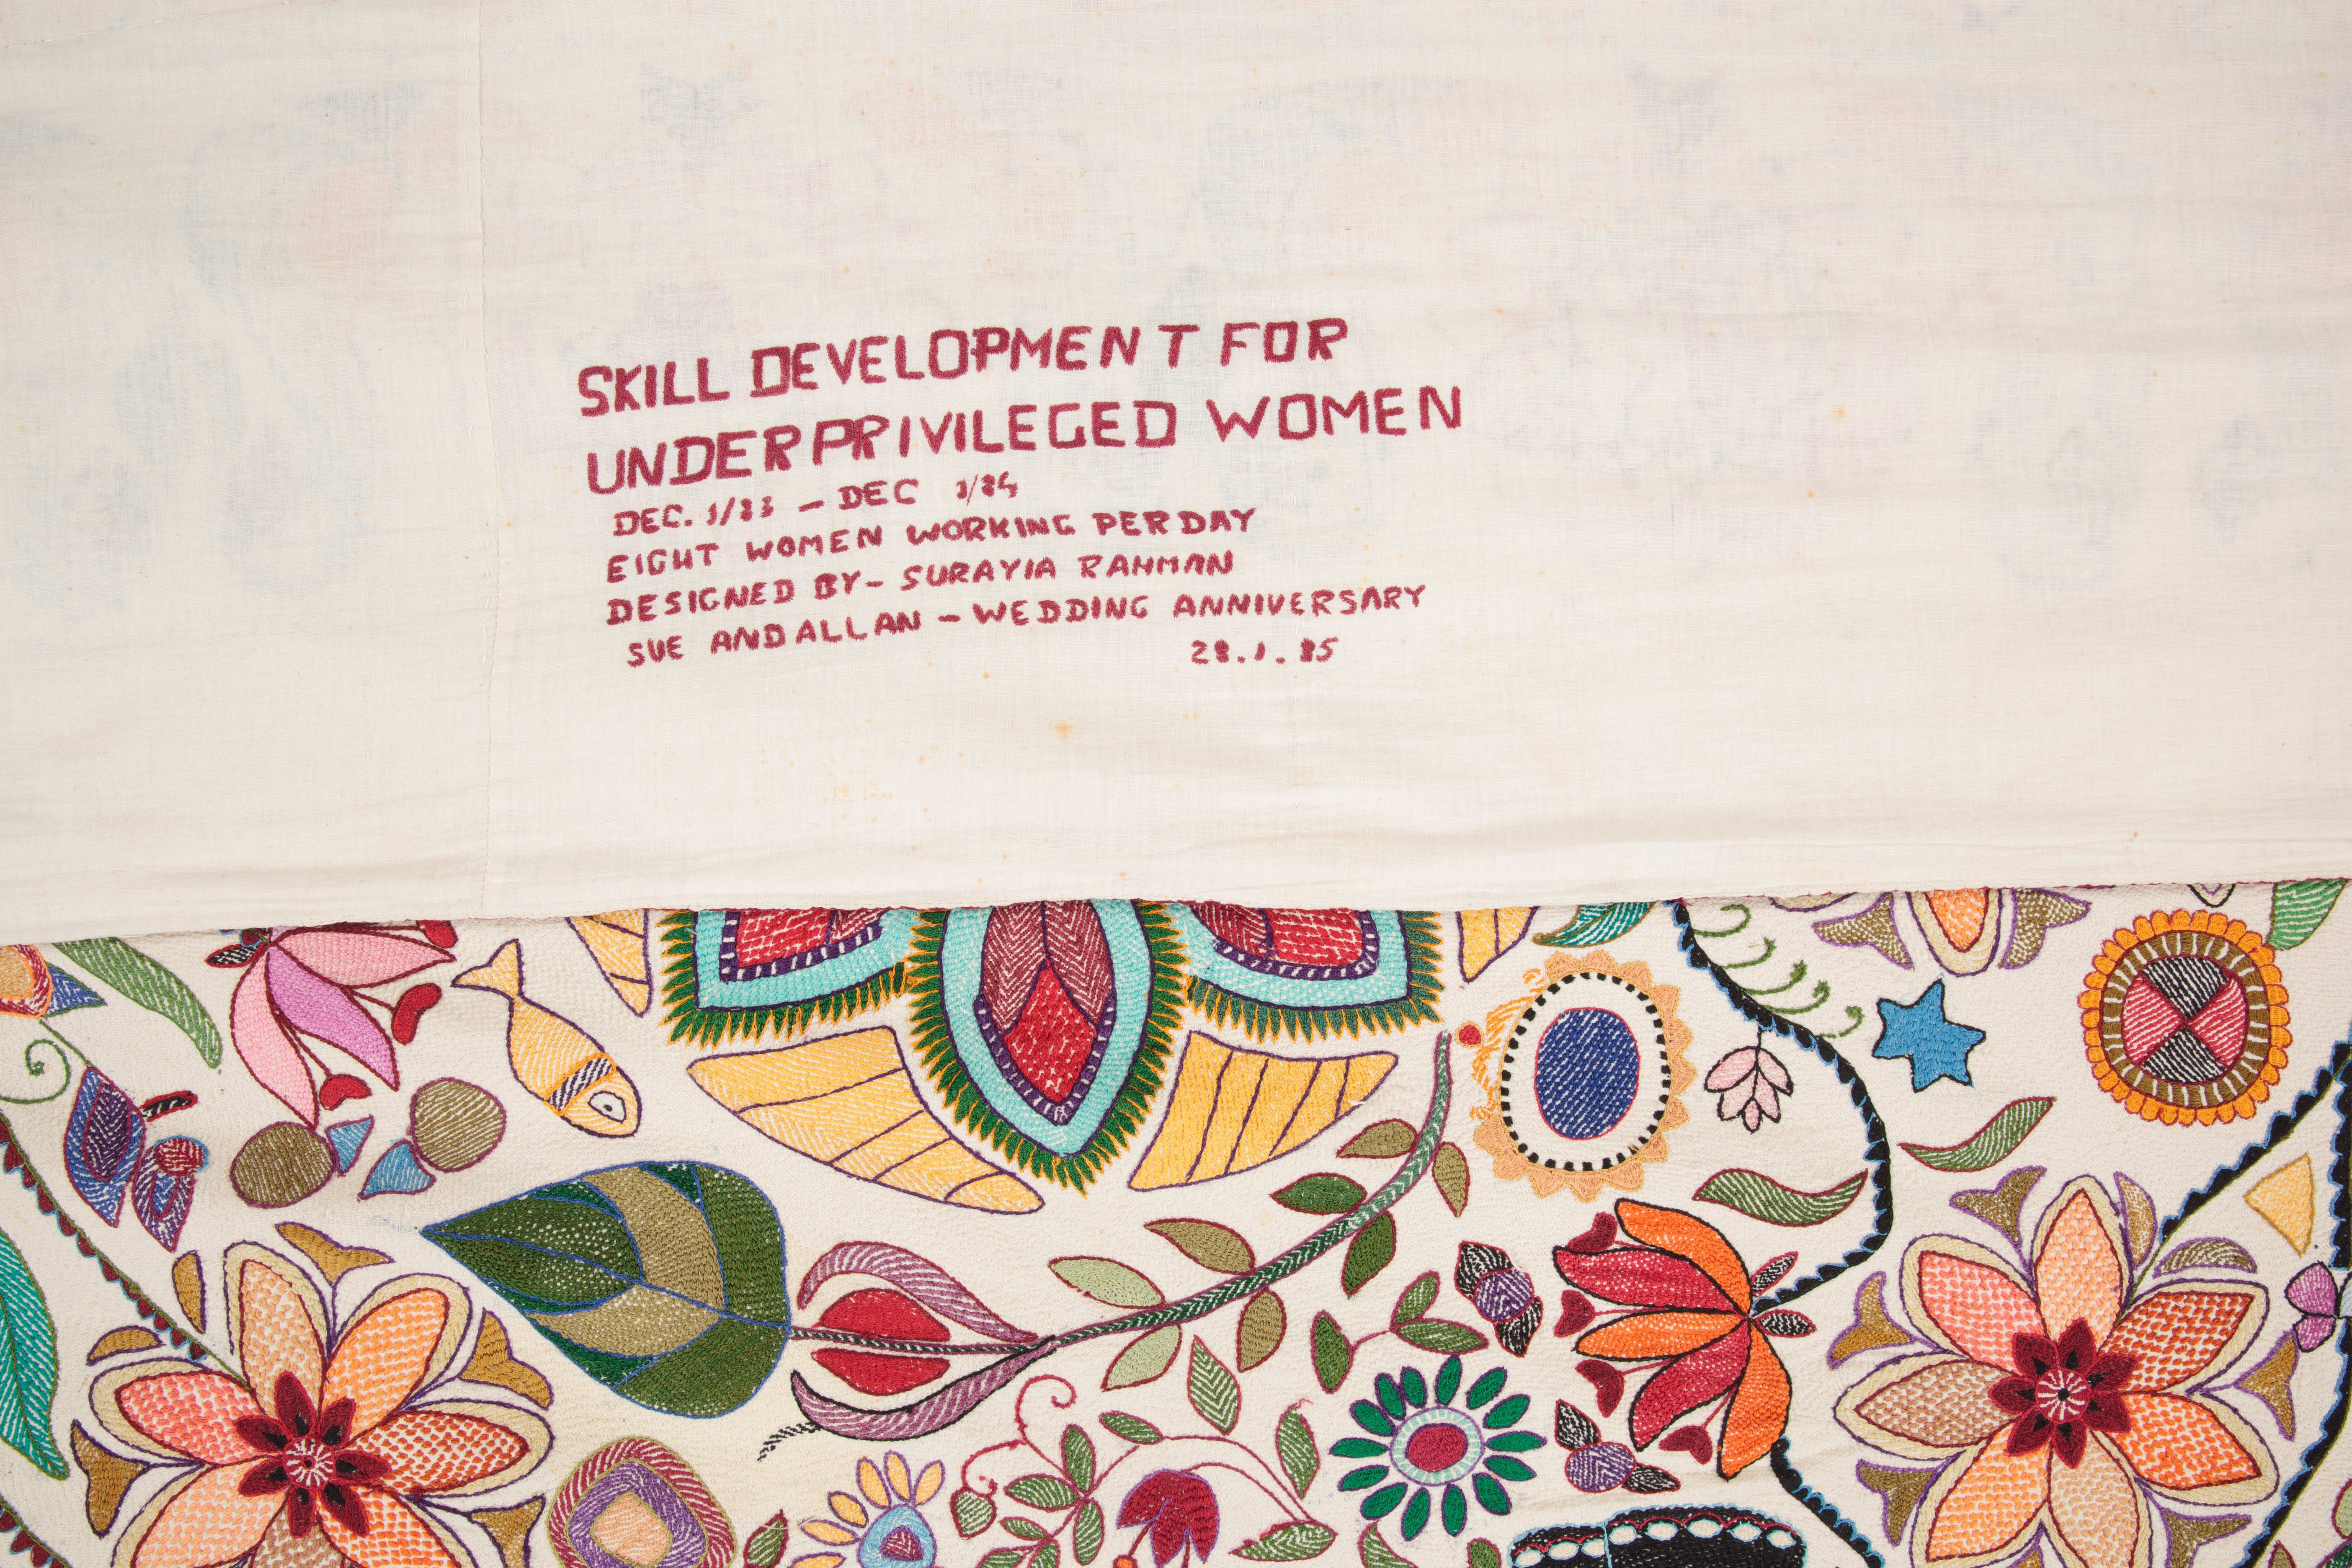 Close up of the production and provenance information embroidered on the reverse. Text says 'Skill Development for Underprivileged Women. DEc 1983 - Dec 1984. Eight women working per day. Designed by Surayia Rahman. Sue and Allan - Wedding Anniversary. 28.1.85'